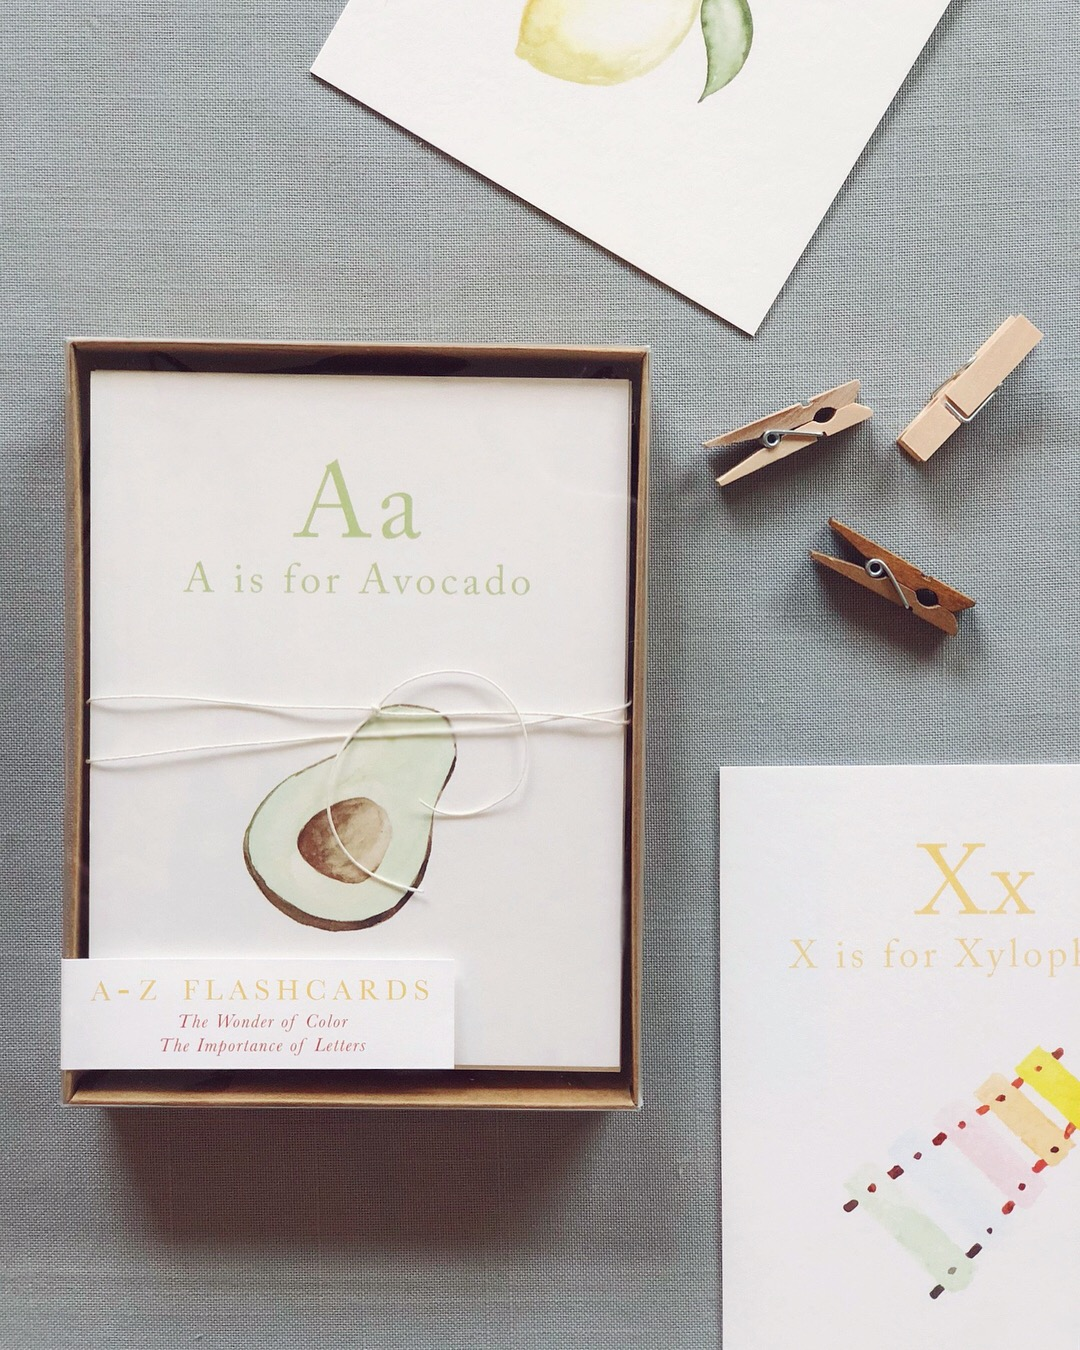 ABC Flashcards by Victoria Austin